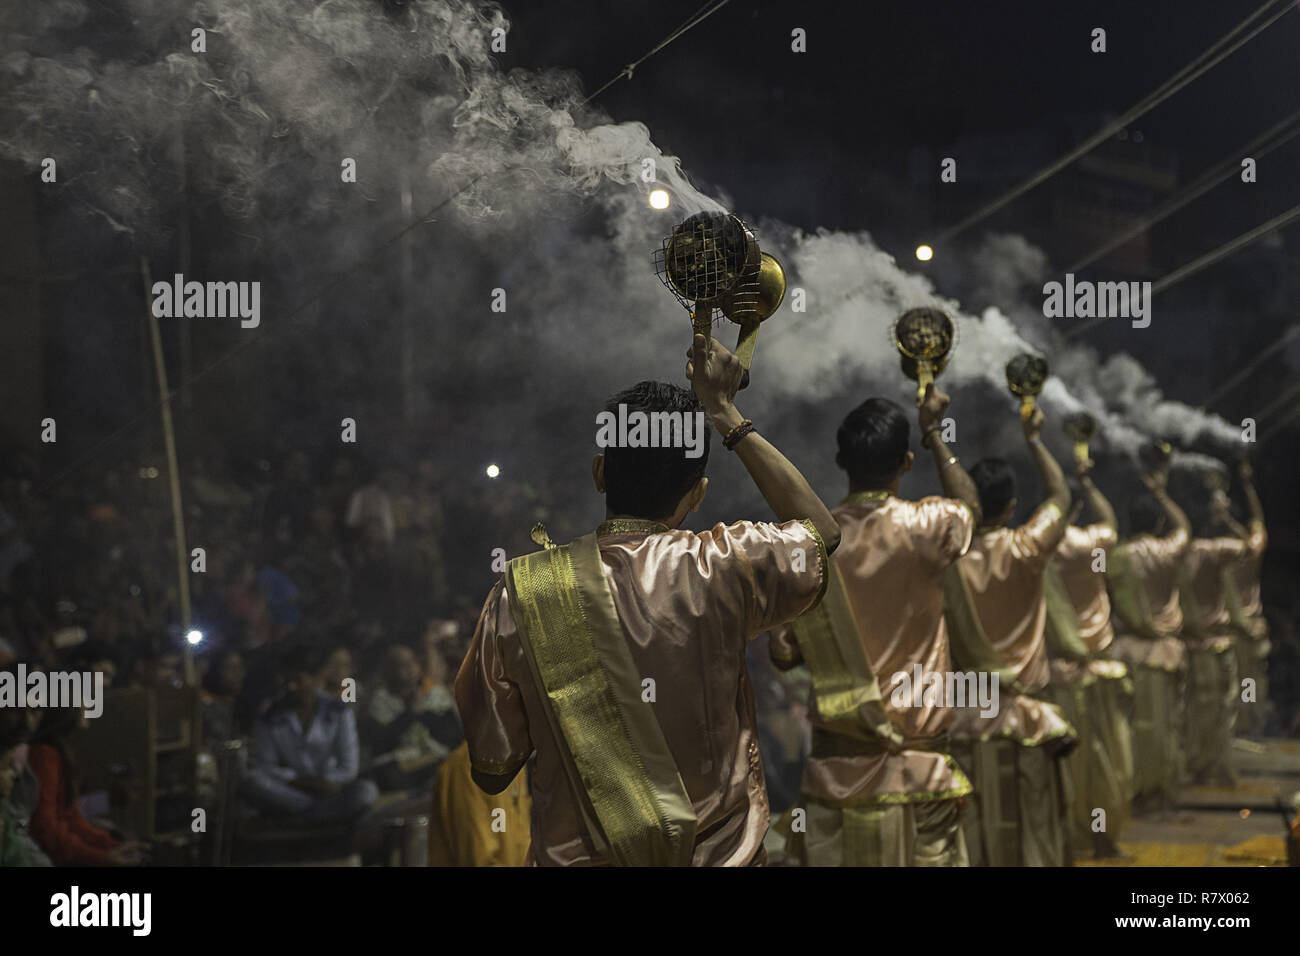 July 25, 2018 - Varanasi, Uttar Pradesh, India - Hindu priests are seen performing at the Aarit ceremony on the banks of the Ganges river..Varanasi is a city in the northern Indian state of Uttar Pradesh dating to the 11th century B.C. Regarded as the spiritual capital of India, the city draws Hindu pilgrims who bathe in the Ganges River's sacred waters and perform funeral rites. The river is dedicated to the Hindu god Shiva. (Credit Image: © Enzo Tomasiello/SOPA Images via ZUMA Wire) - Stock Image